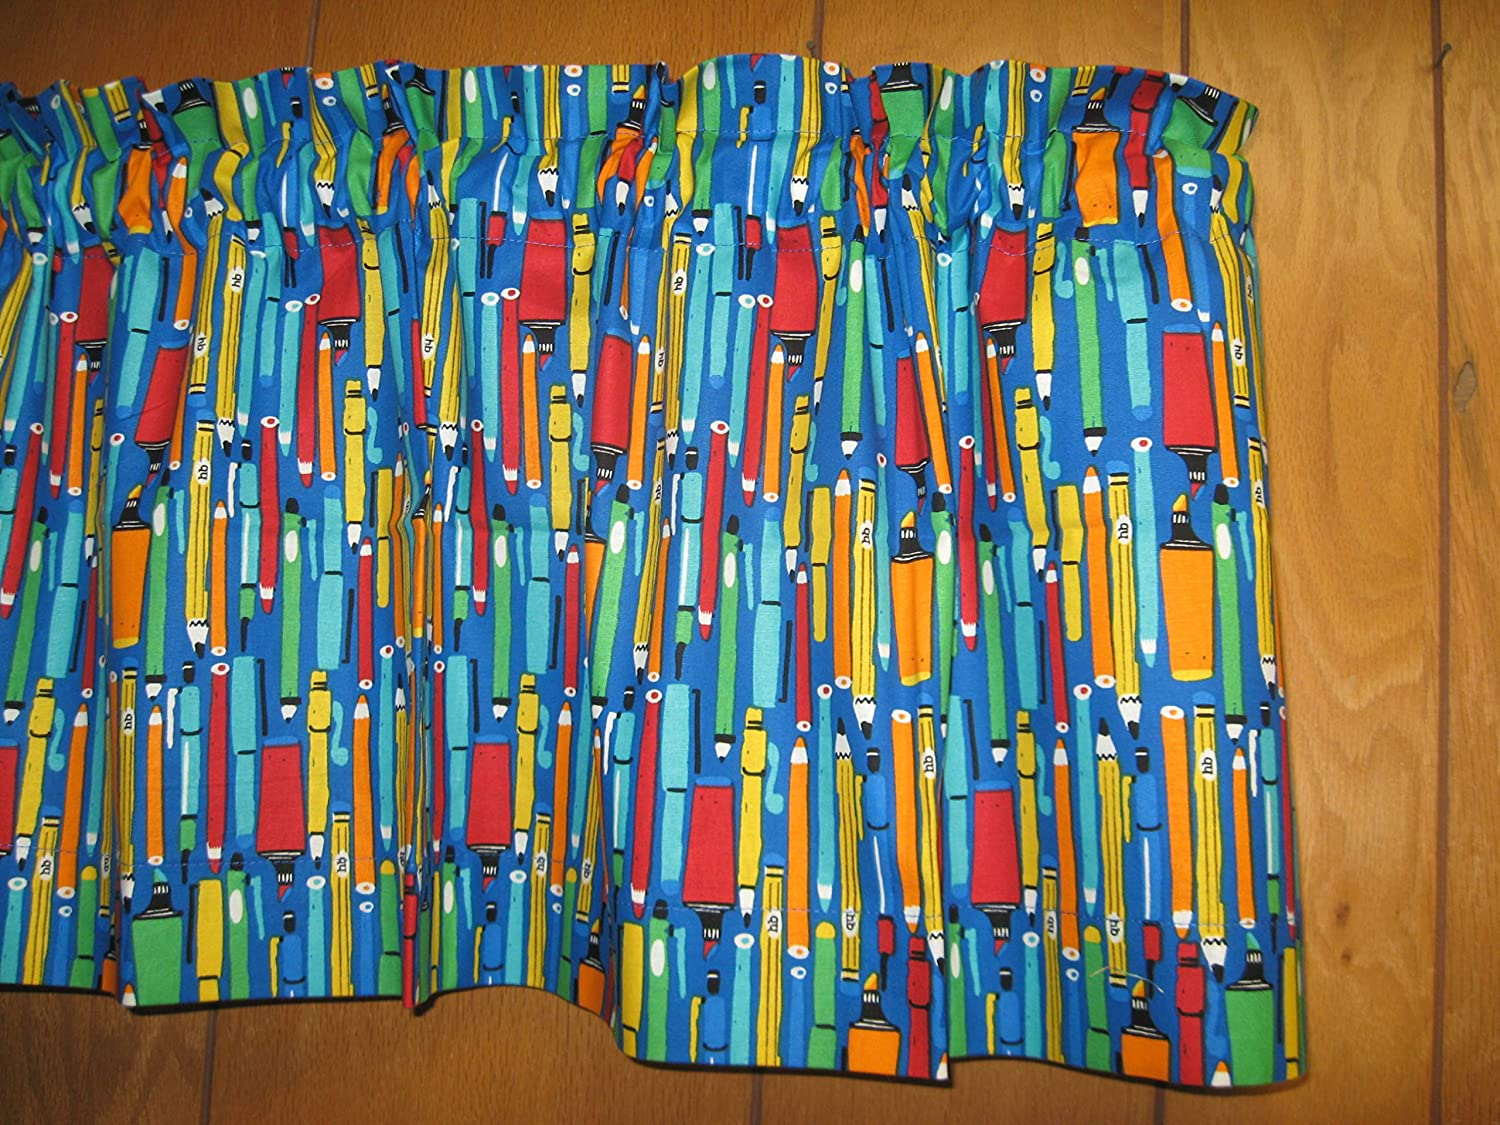 Handmade Markers Pencils Cotton Colorful Back to School Window Curtain Valance